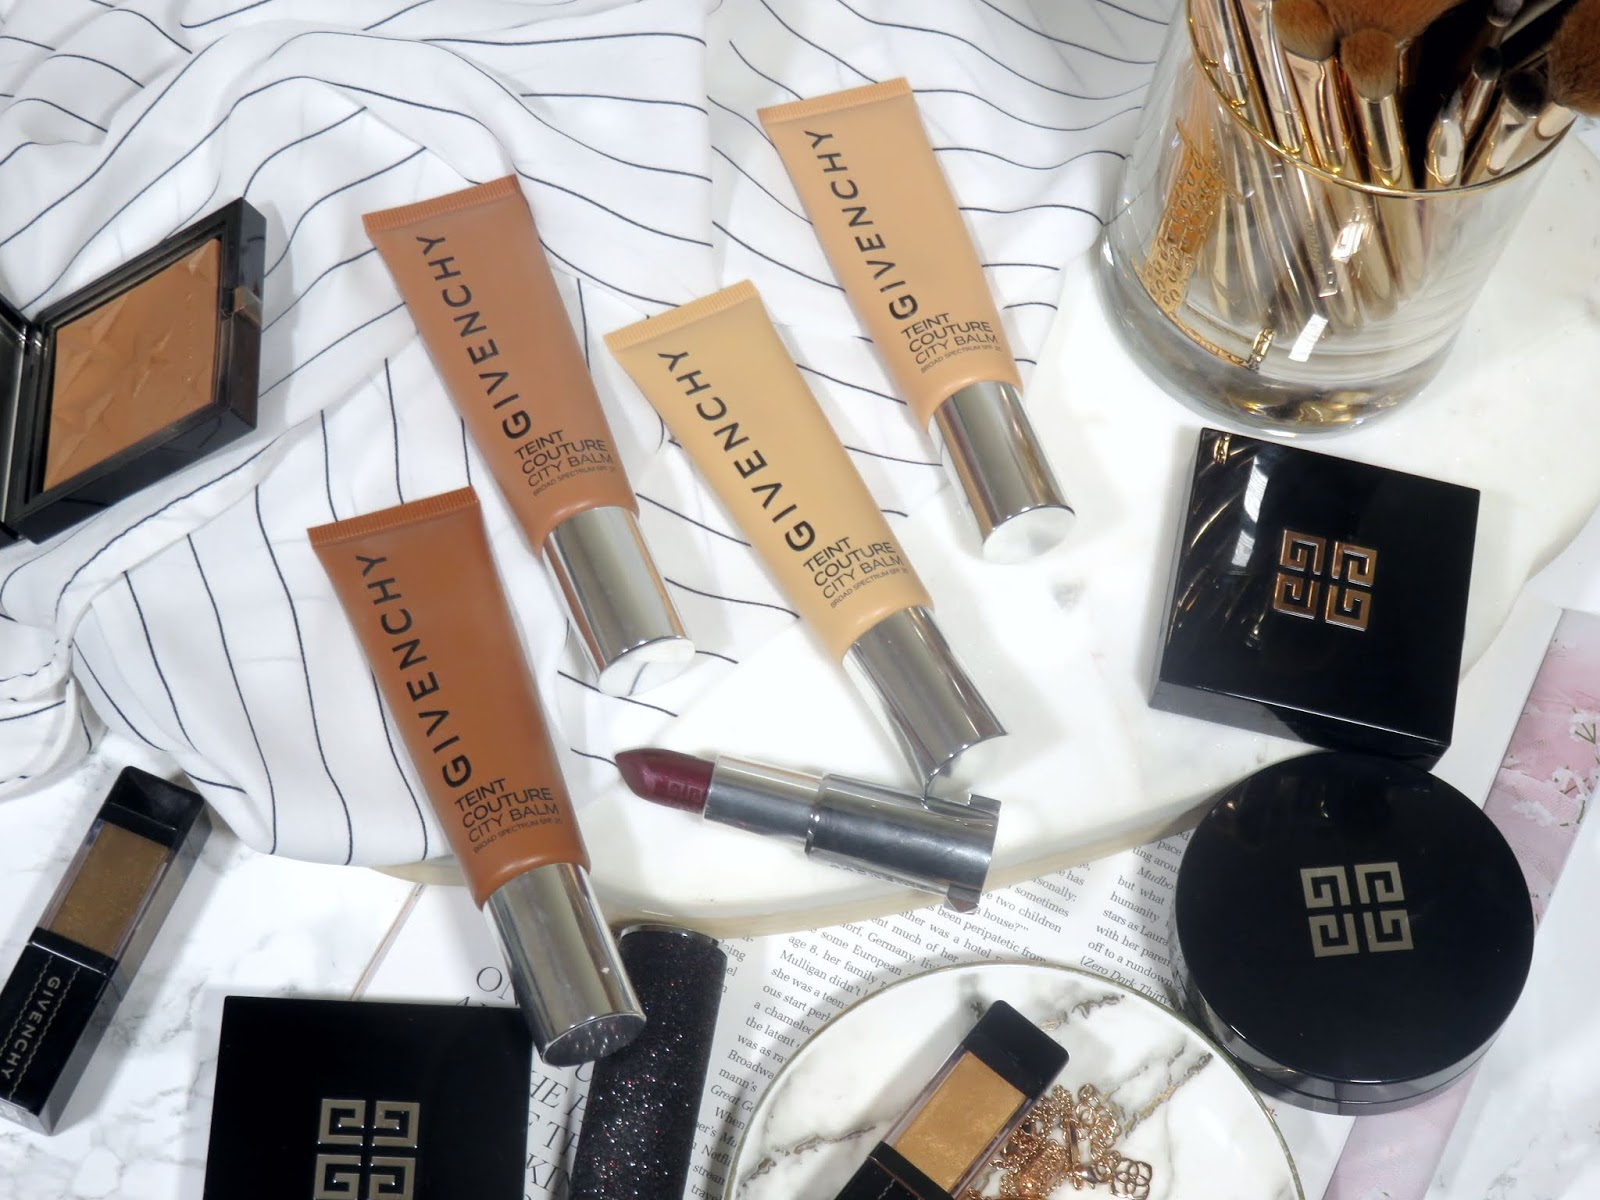 Givenchy Teint Couture City Balm Radiant Perfecting Skin Tint SPF 25 Review and Swatches